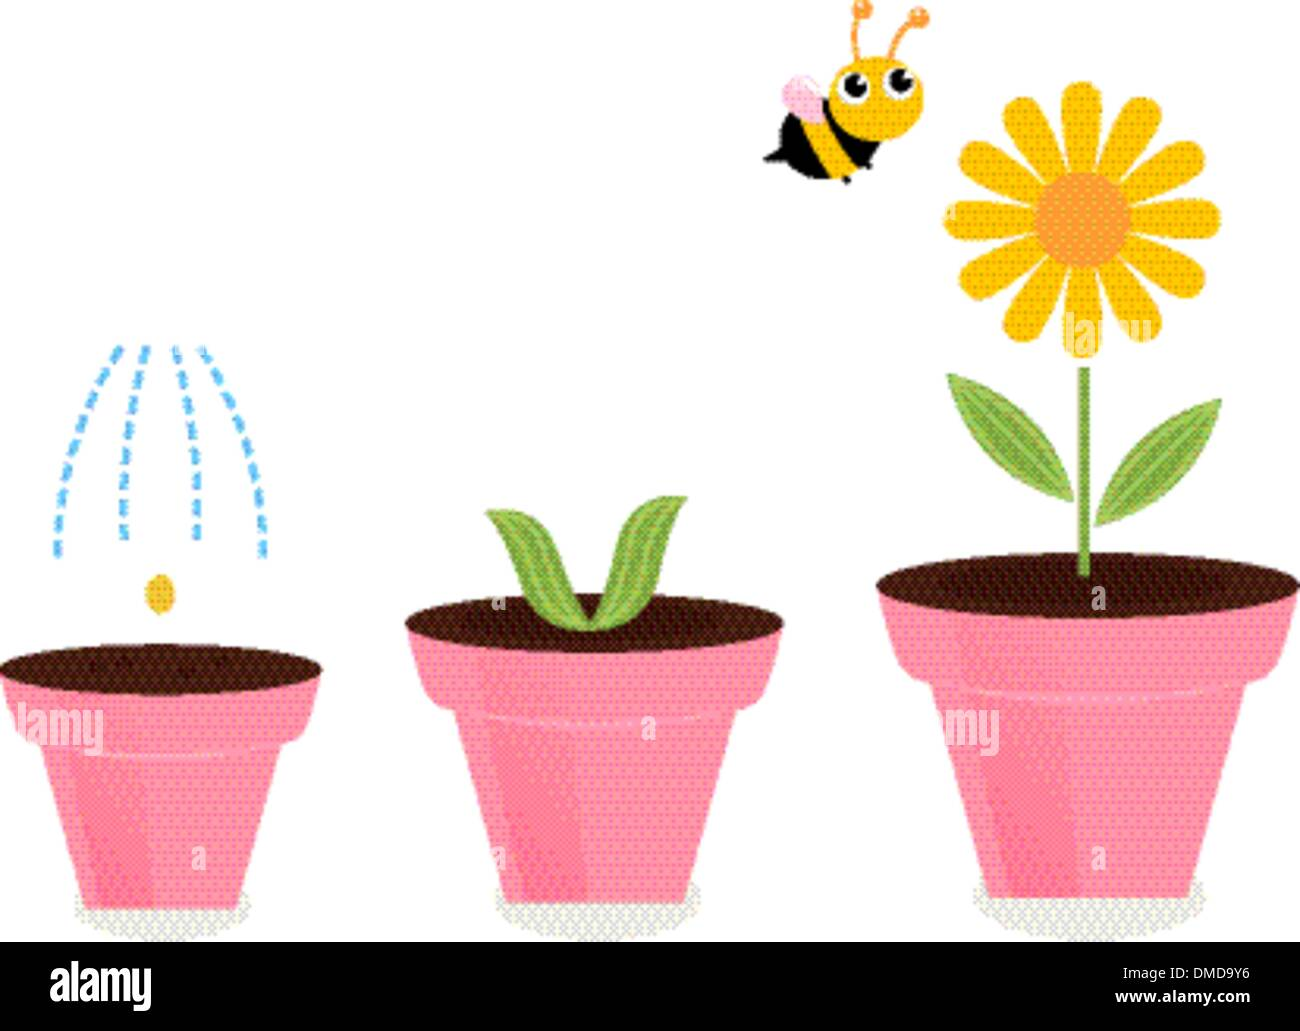 Flower stages stock photos flower stages stock images alamy flower in pots growth stages isolated on white stock image mightylinksfo